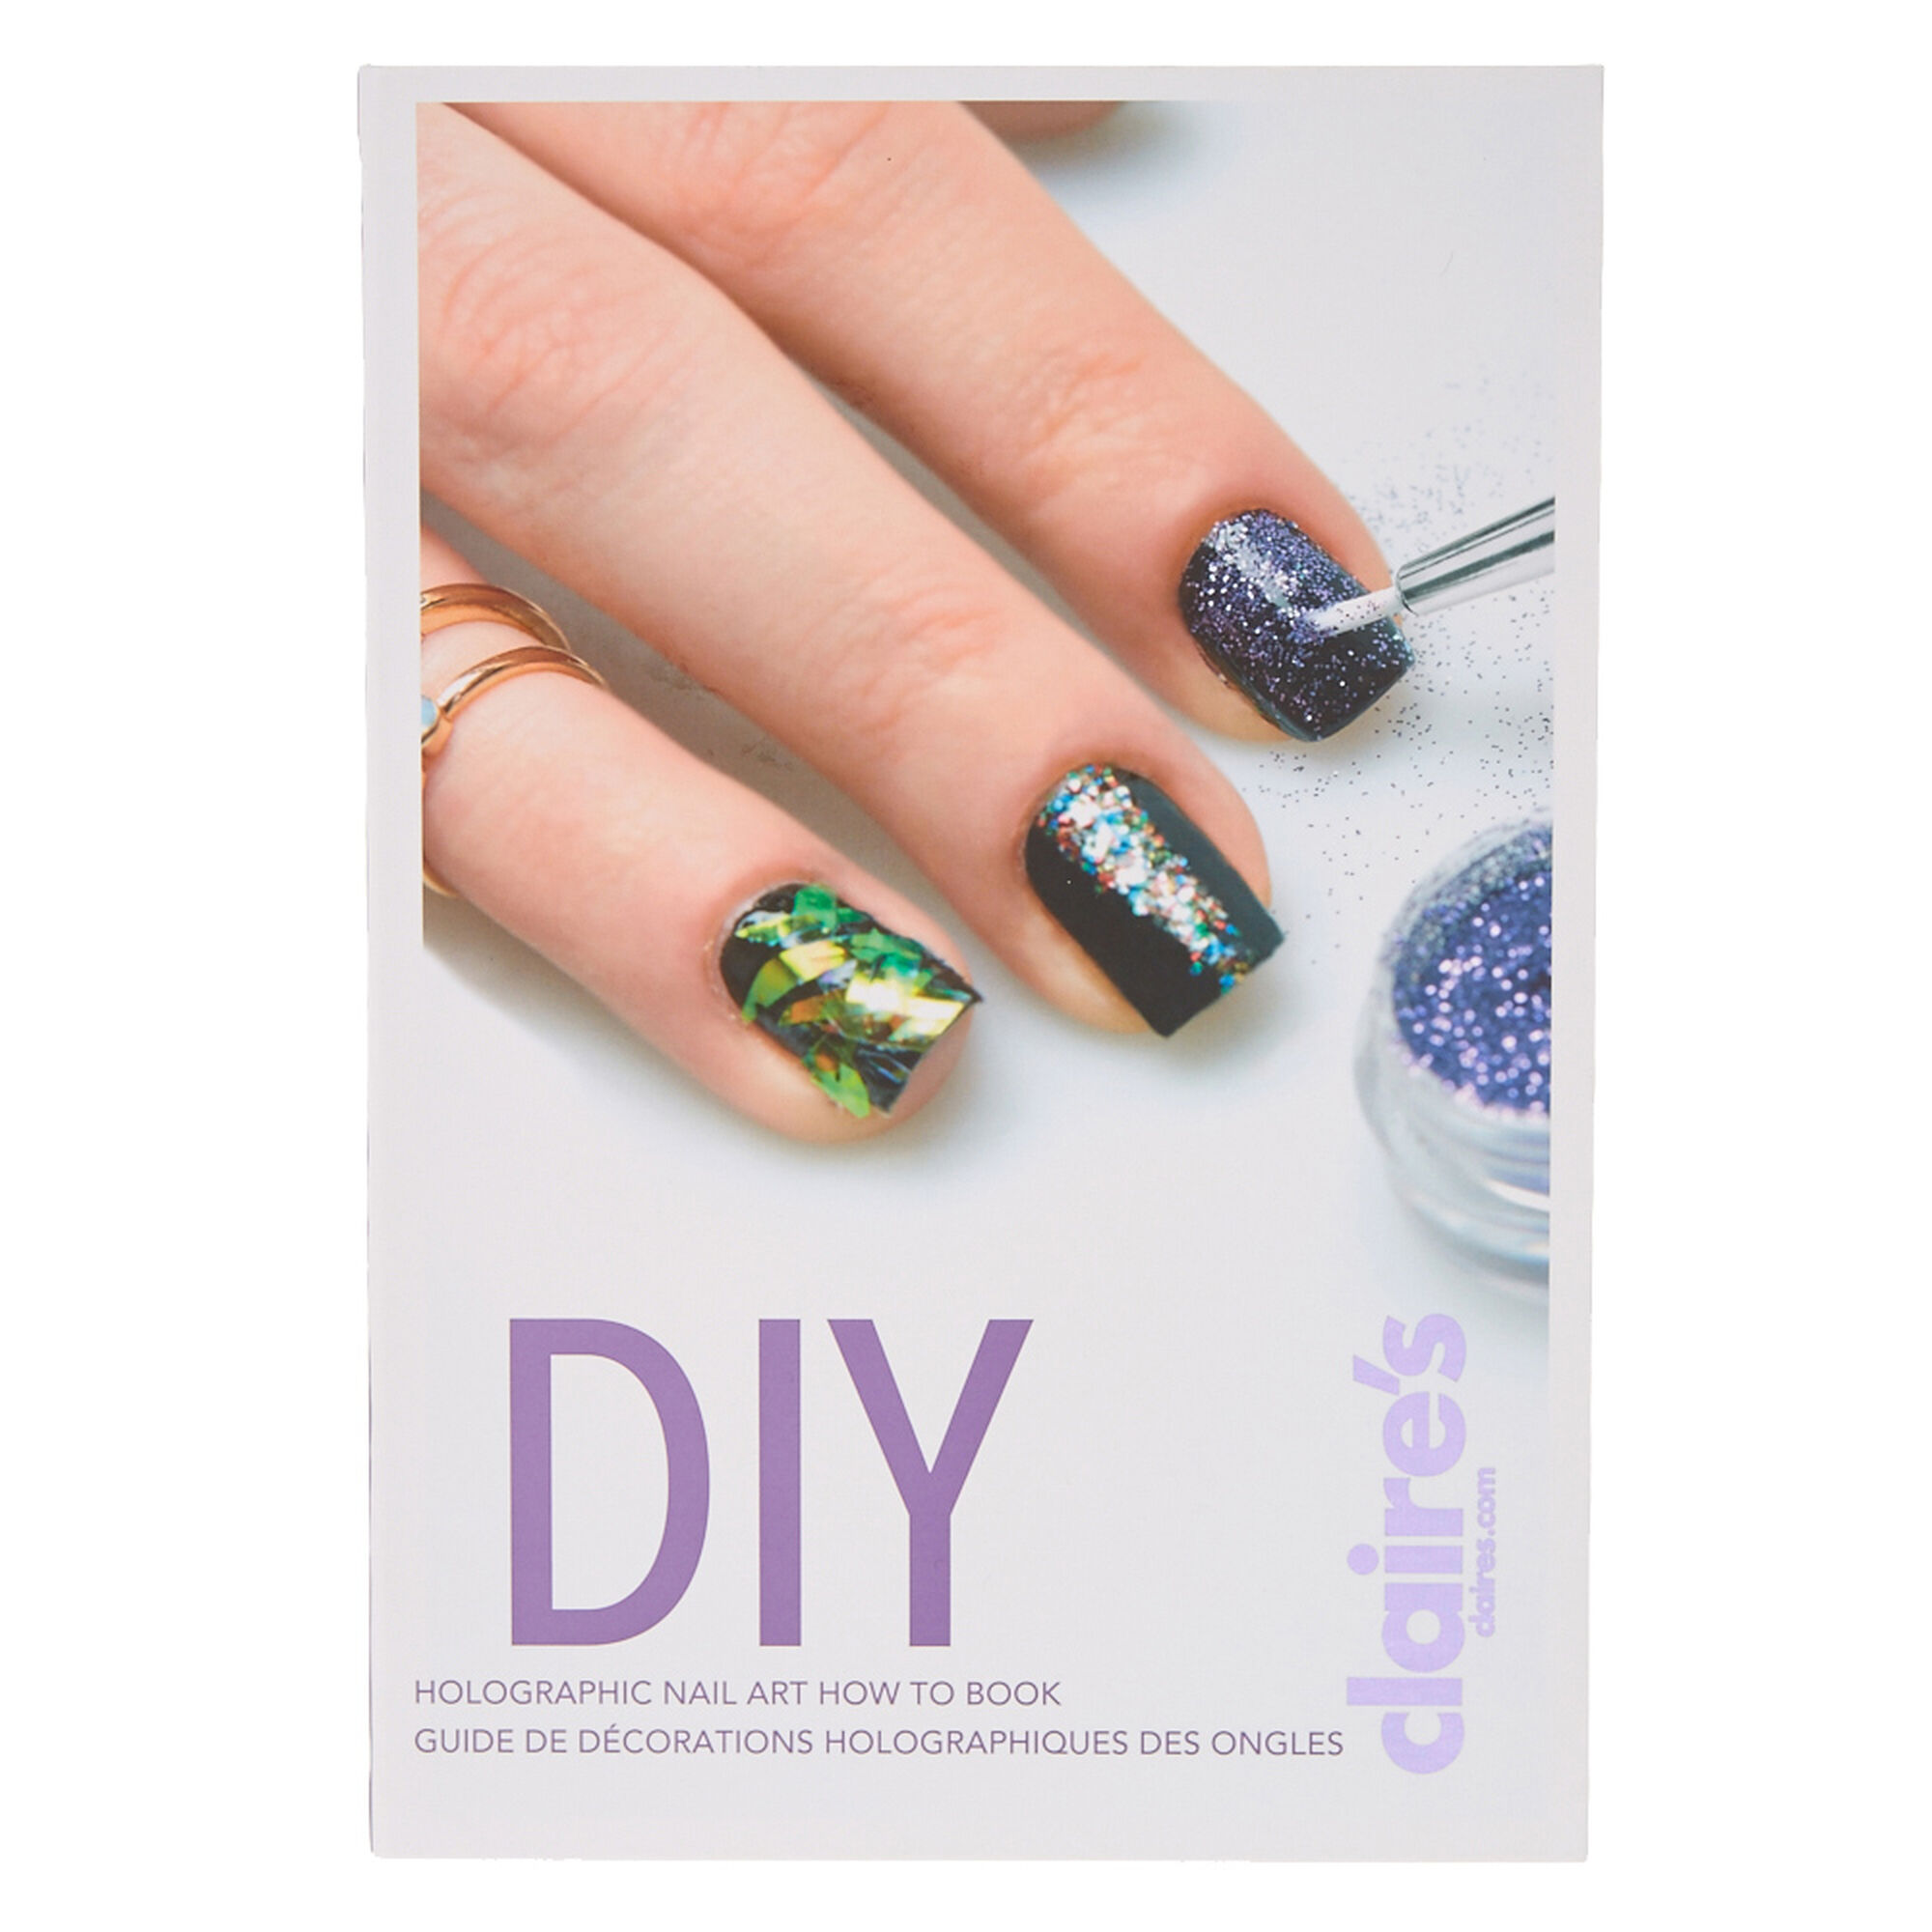 Diy holographic nail art how to book claires diy holographic nail art how to book prinsesfo Choice Image